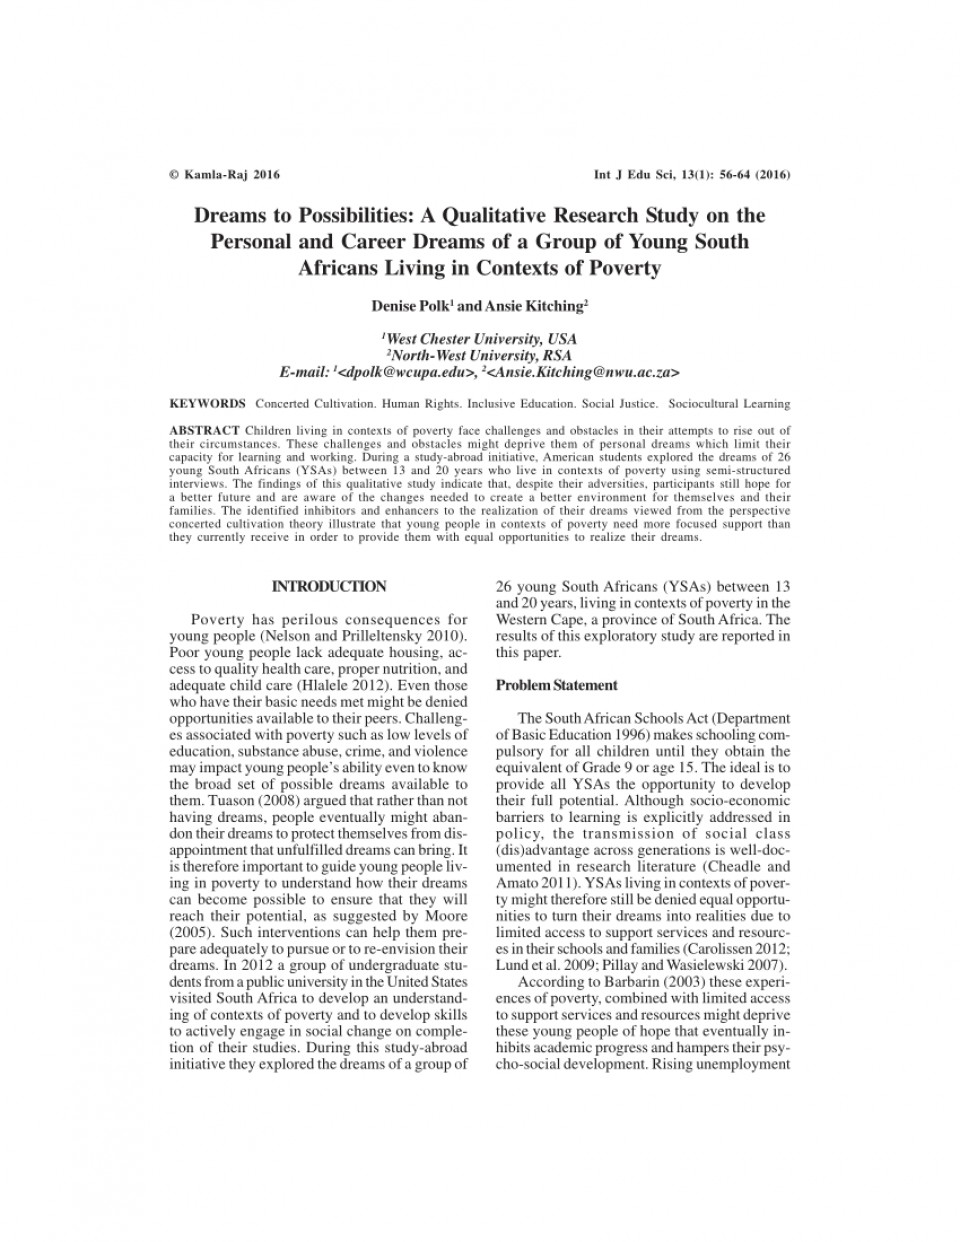 003 Poverty In The Philippines Research Paper Pdf Impressive 960